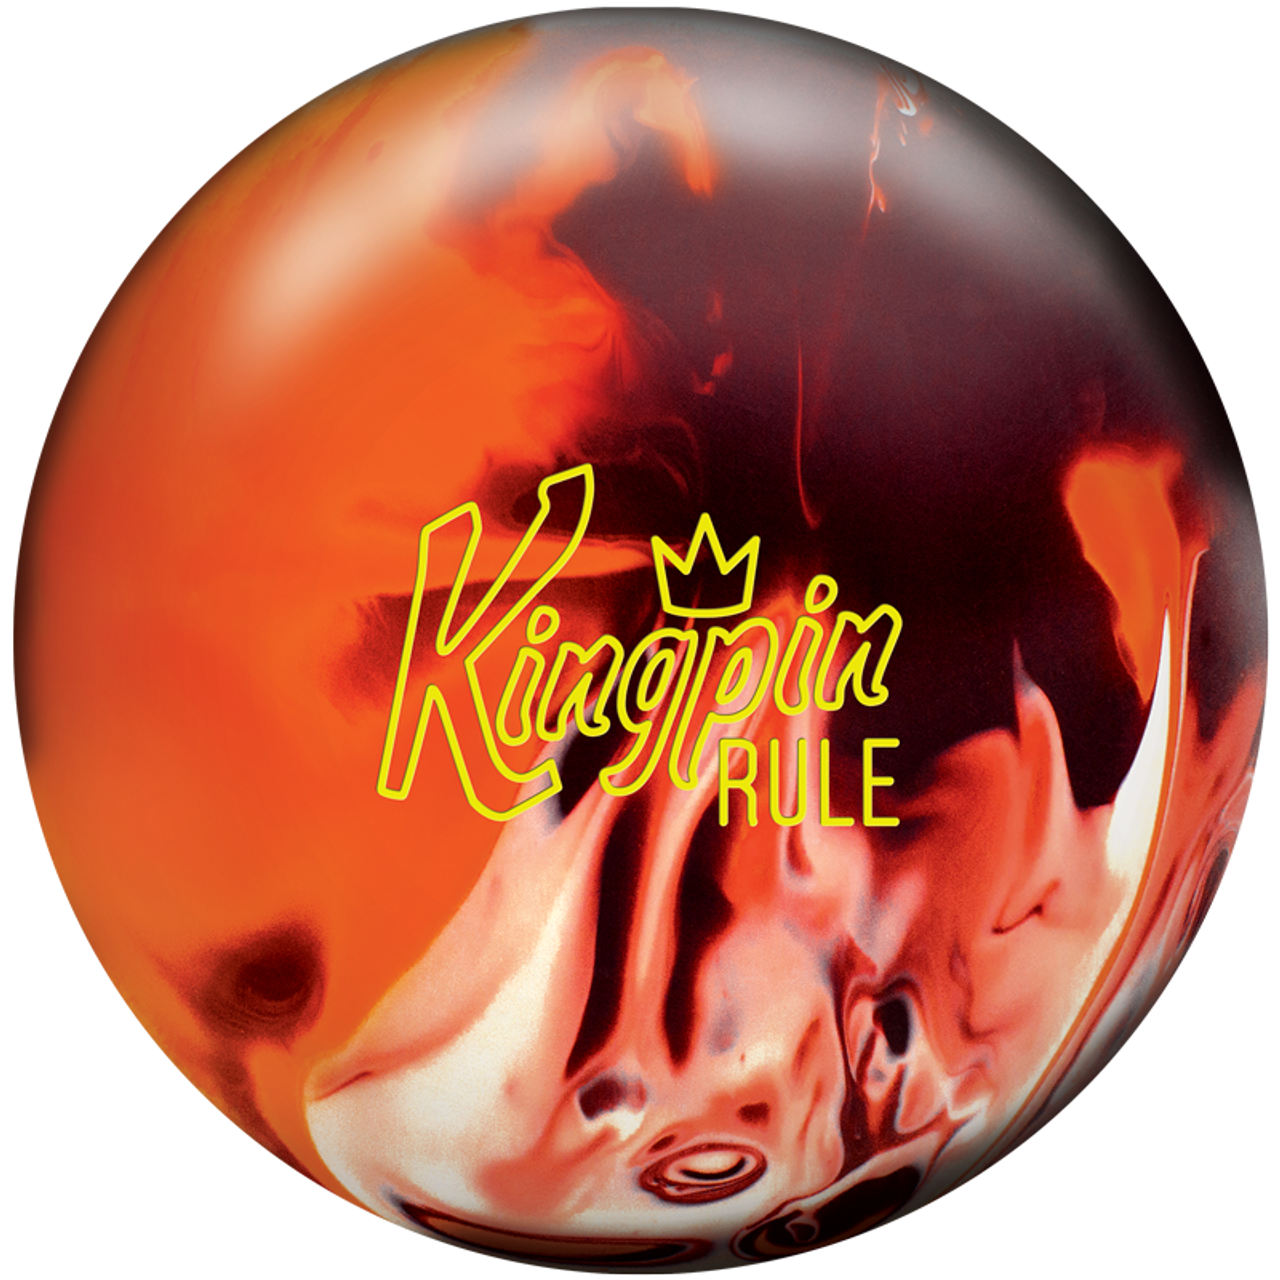 New Brunswick Bowling >> Brunswick Kingpin Rule Bowling Ball Free Shipping Buddiesproshop Com